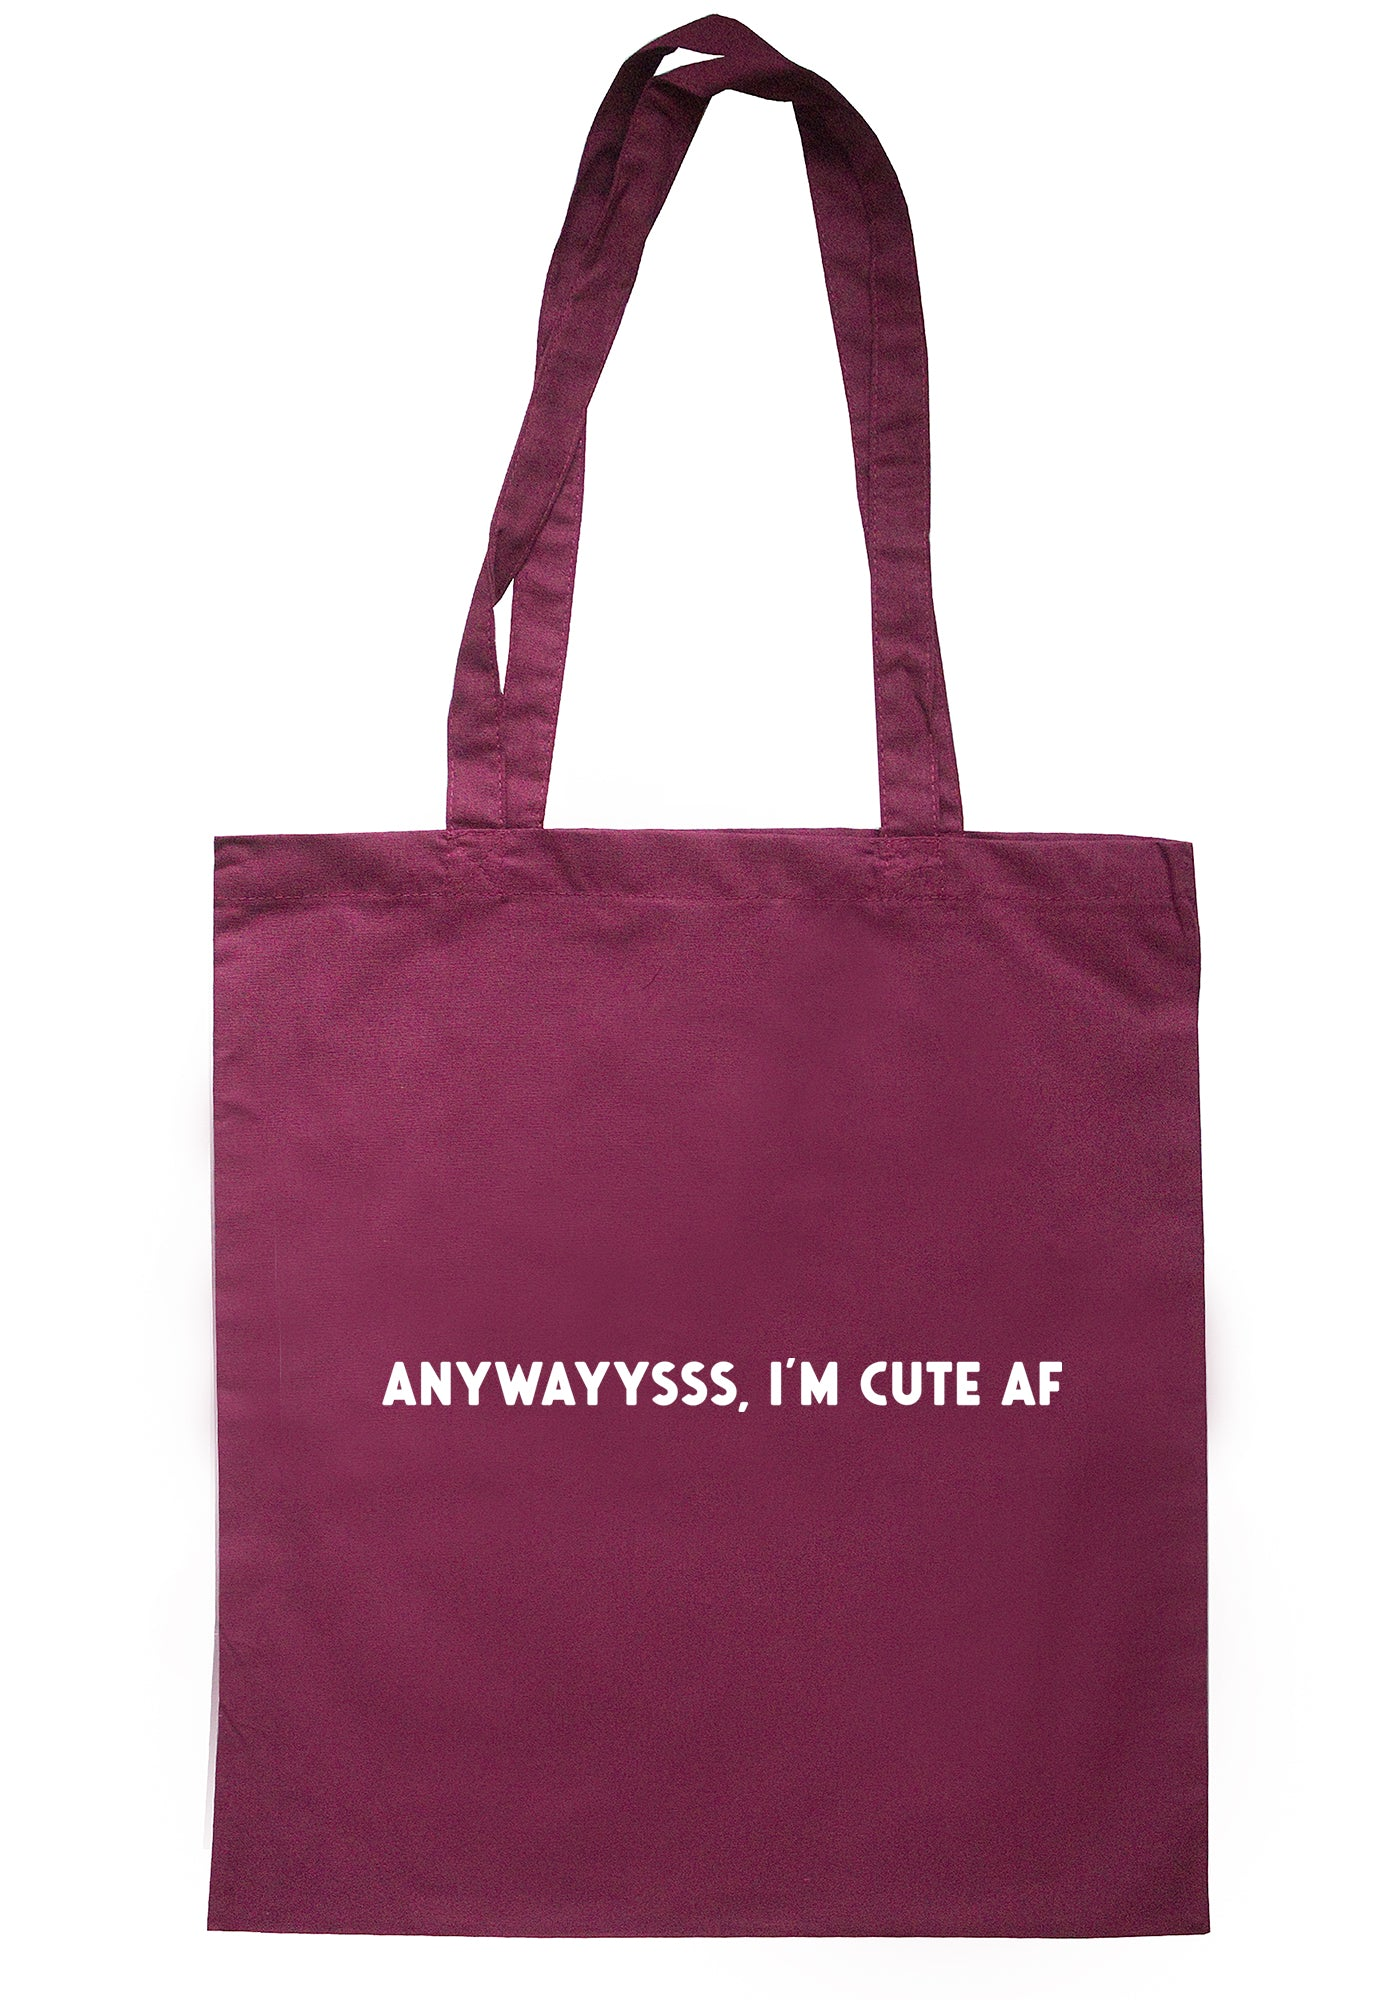 Anyways I'm Cute Af Tote Bag S1137 - Illustrated Identity Ltd.